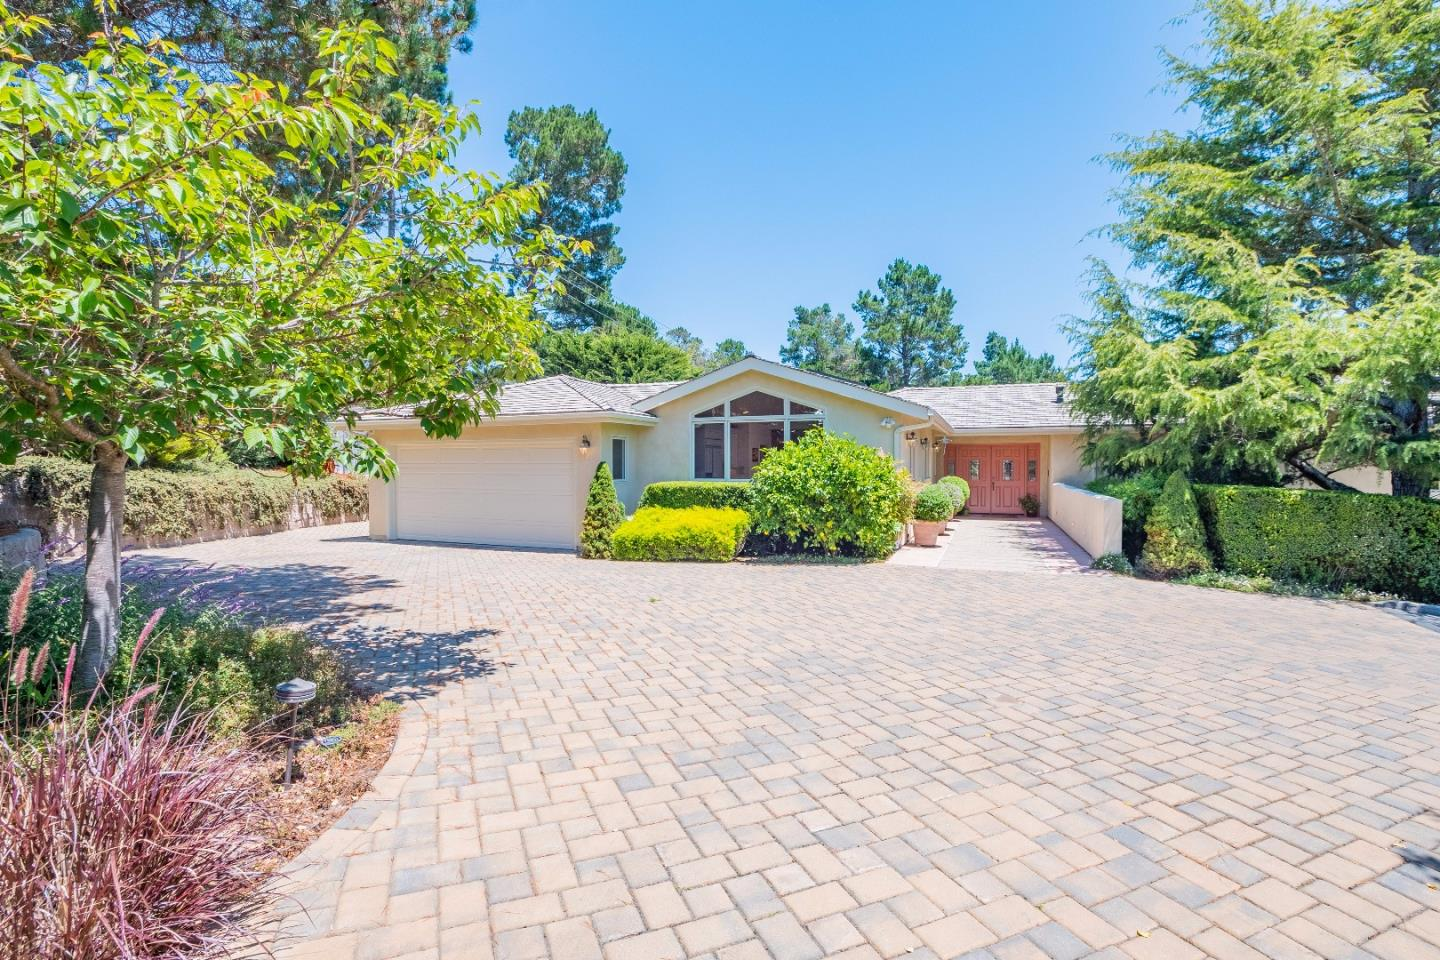 Additional photo for property listing at 25315 Arriba Del Mundo Drive  Carmel, California 93923 Estados Unidos